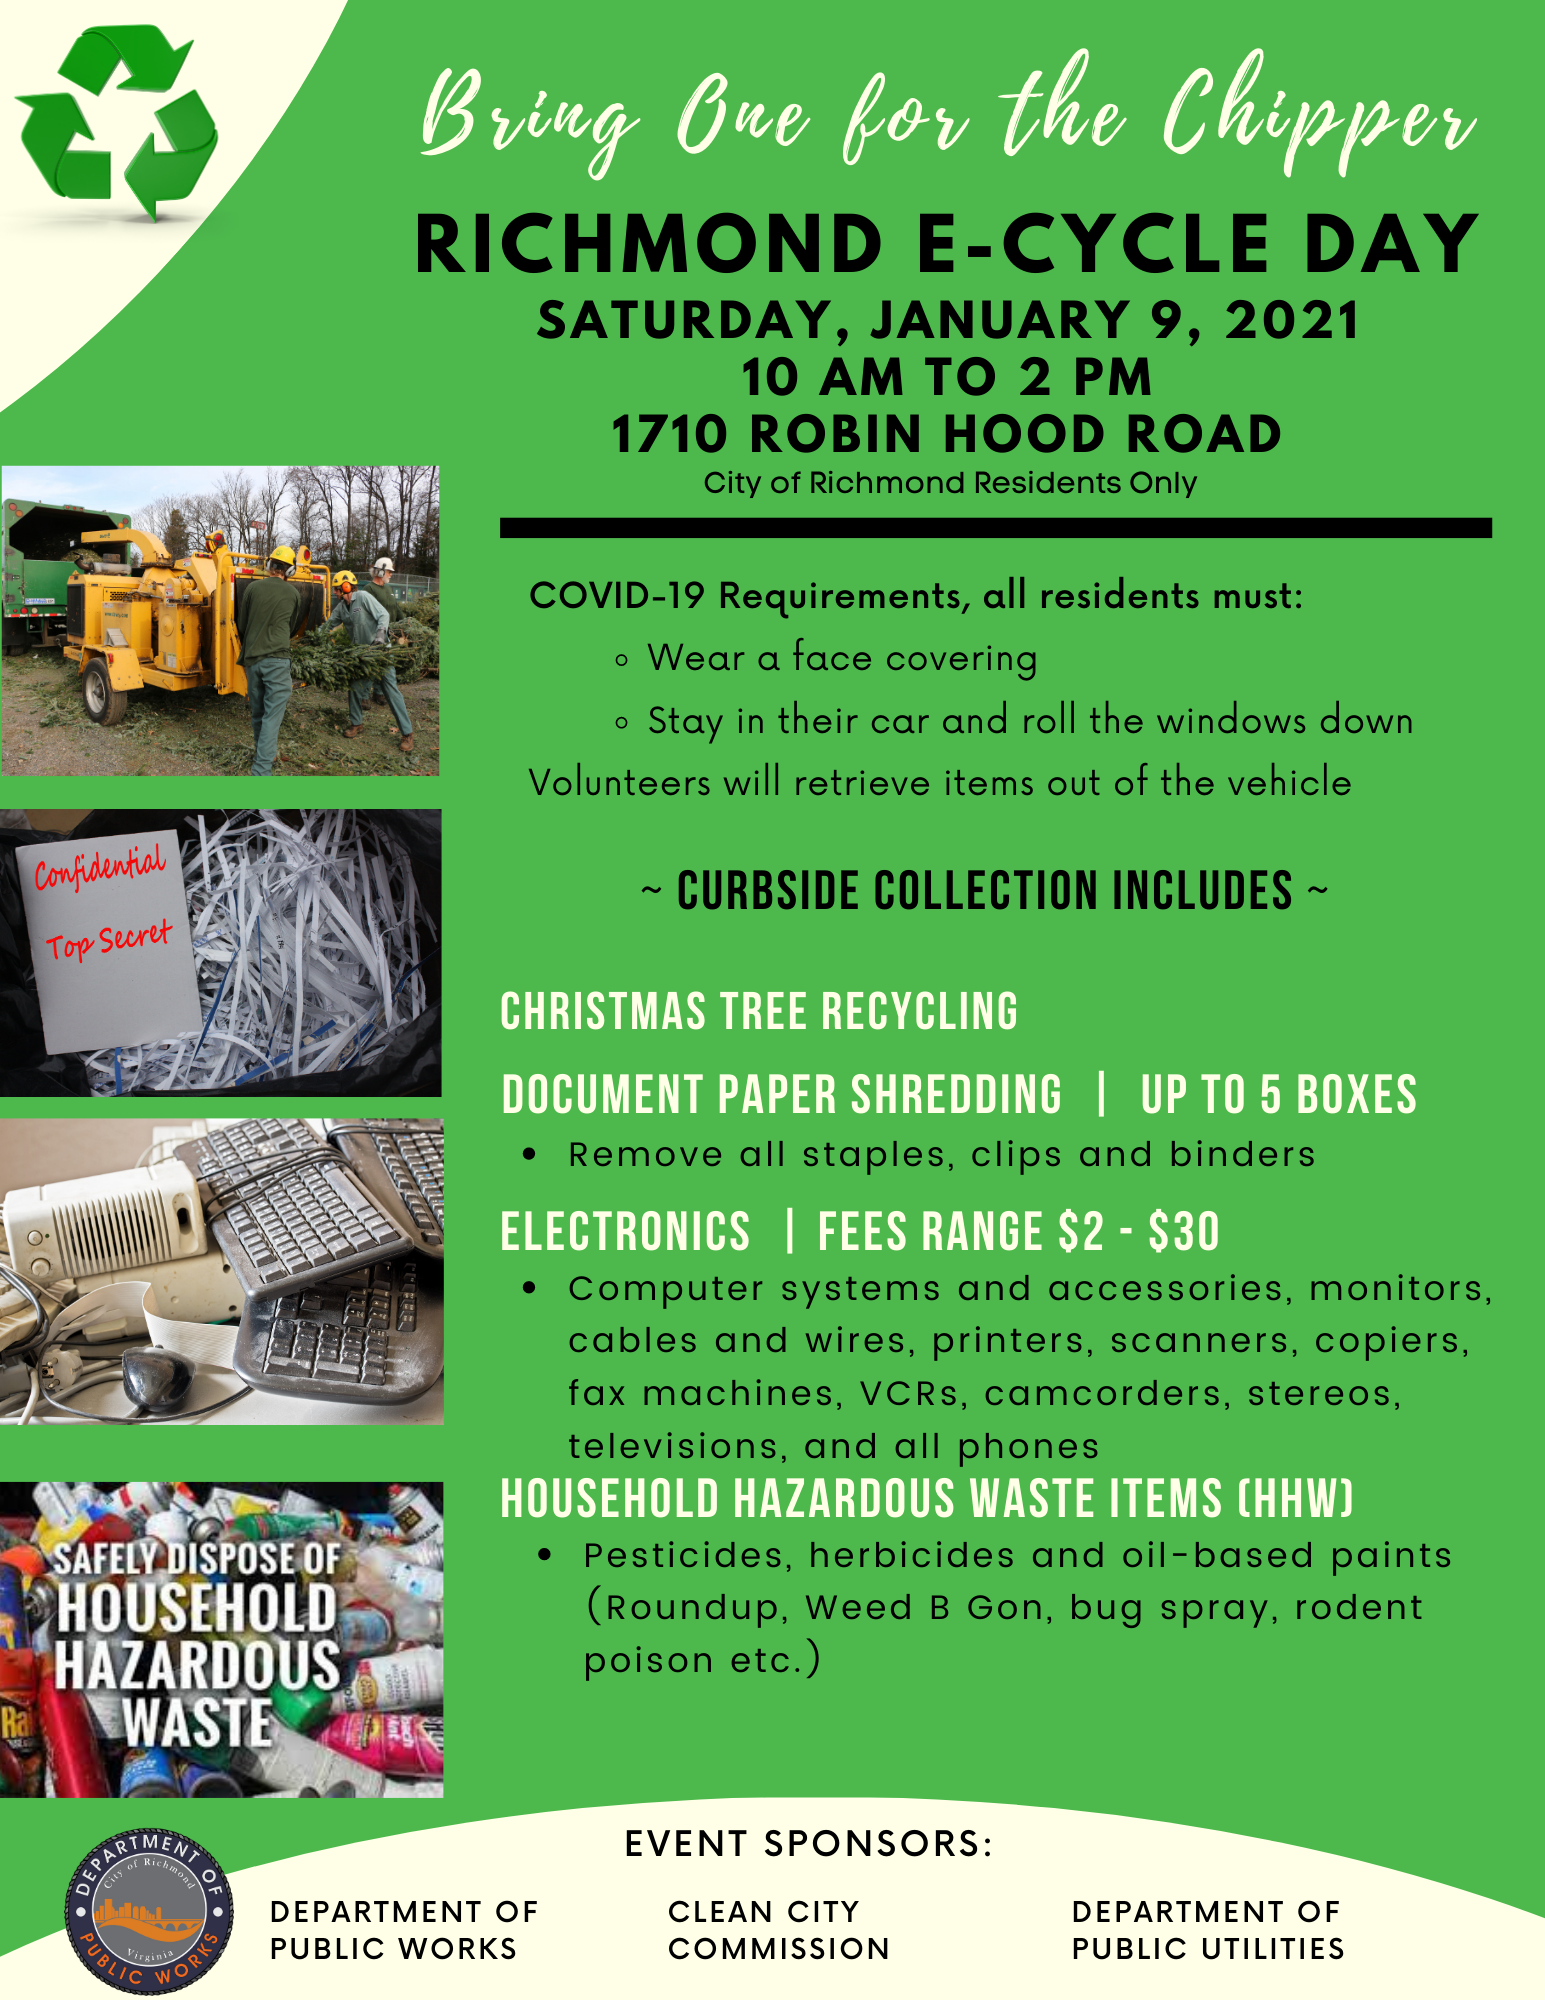 Image - Flyer - Bring One for the Chipper ECycle - January 9 2021